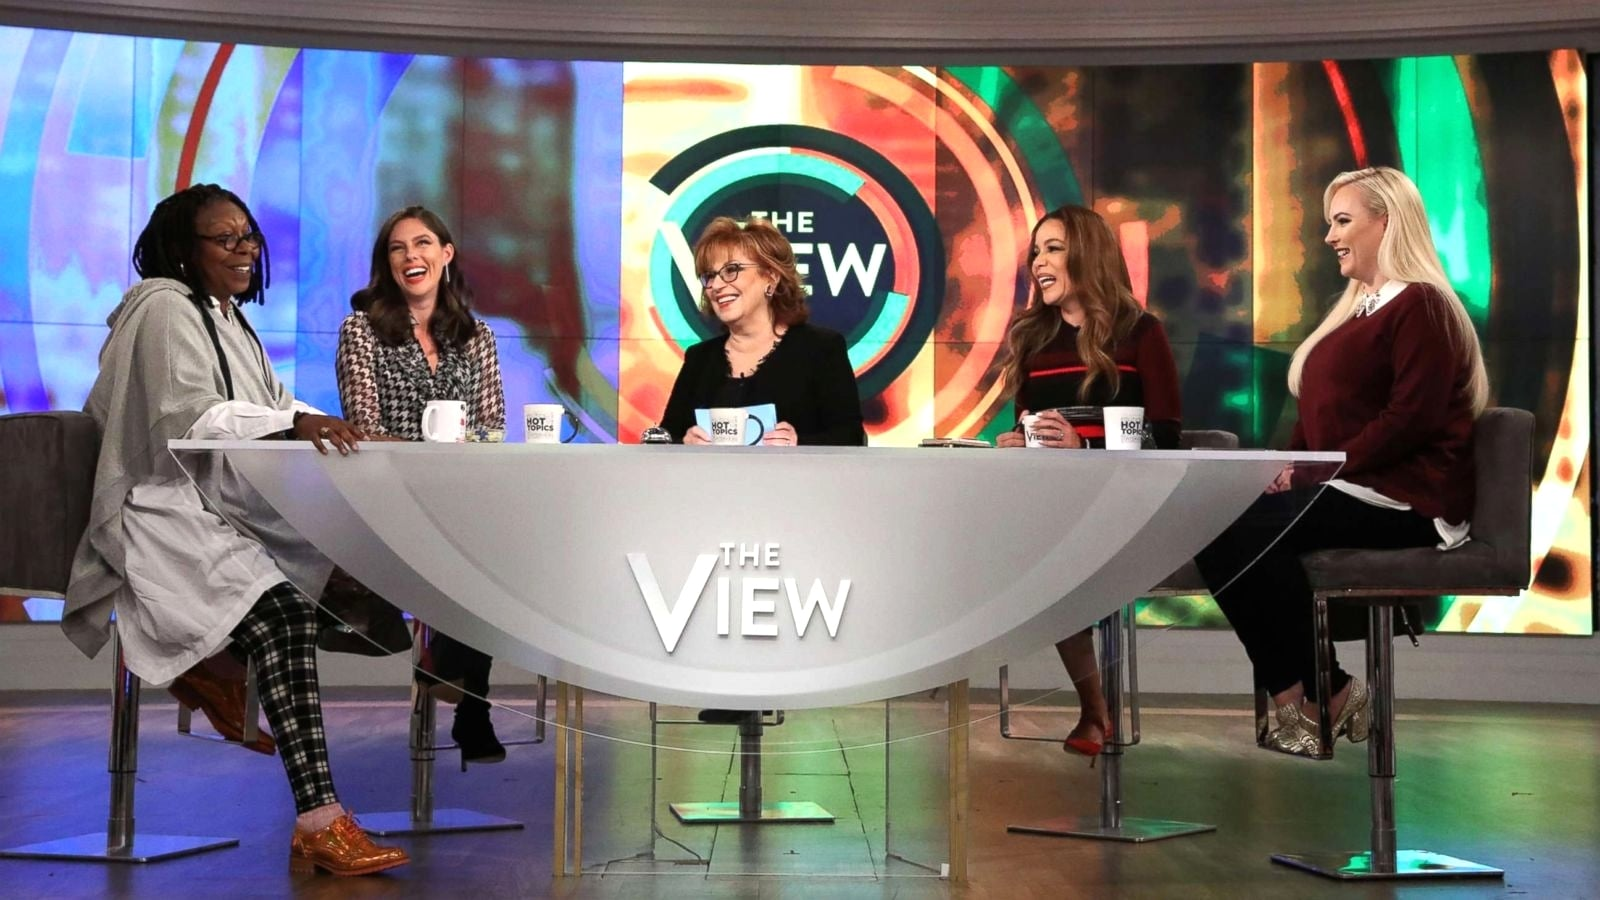 The View - Season 3 Episode 45 : Season 3, Episode 45